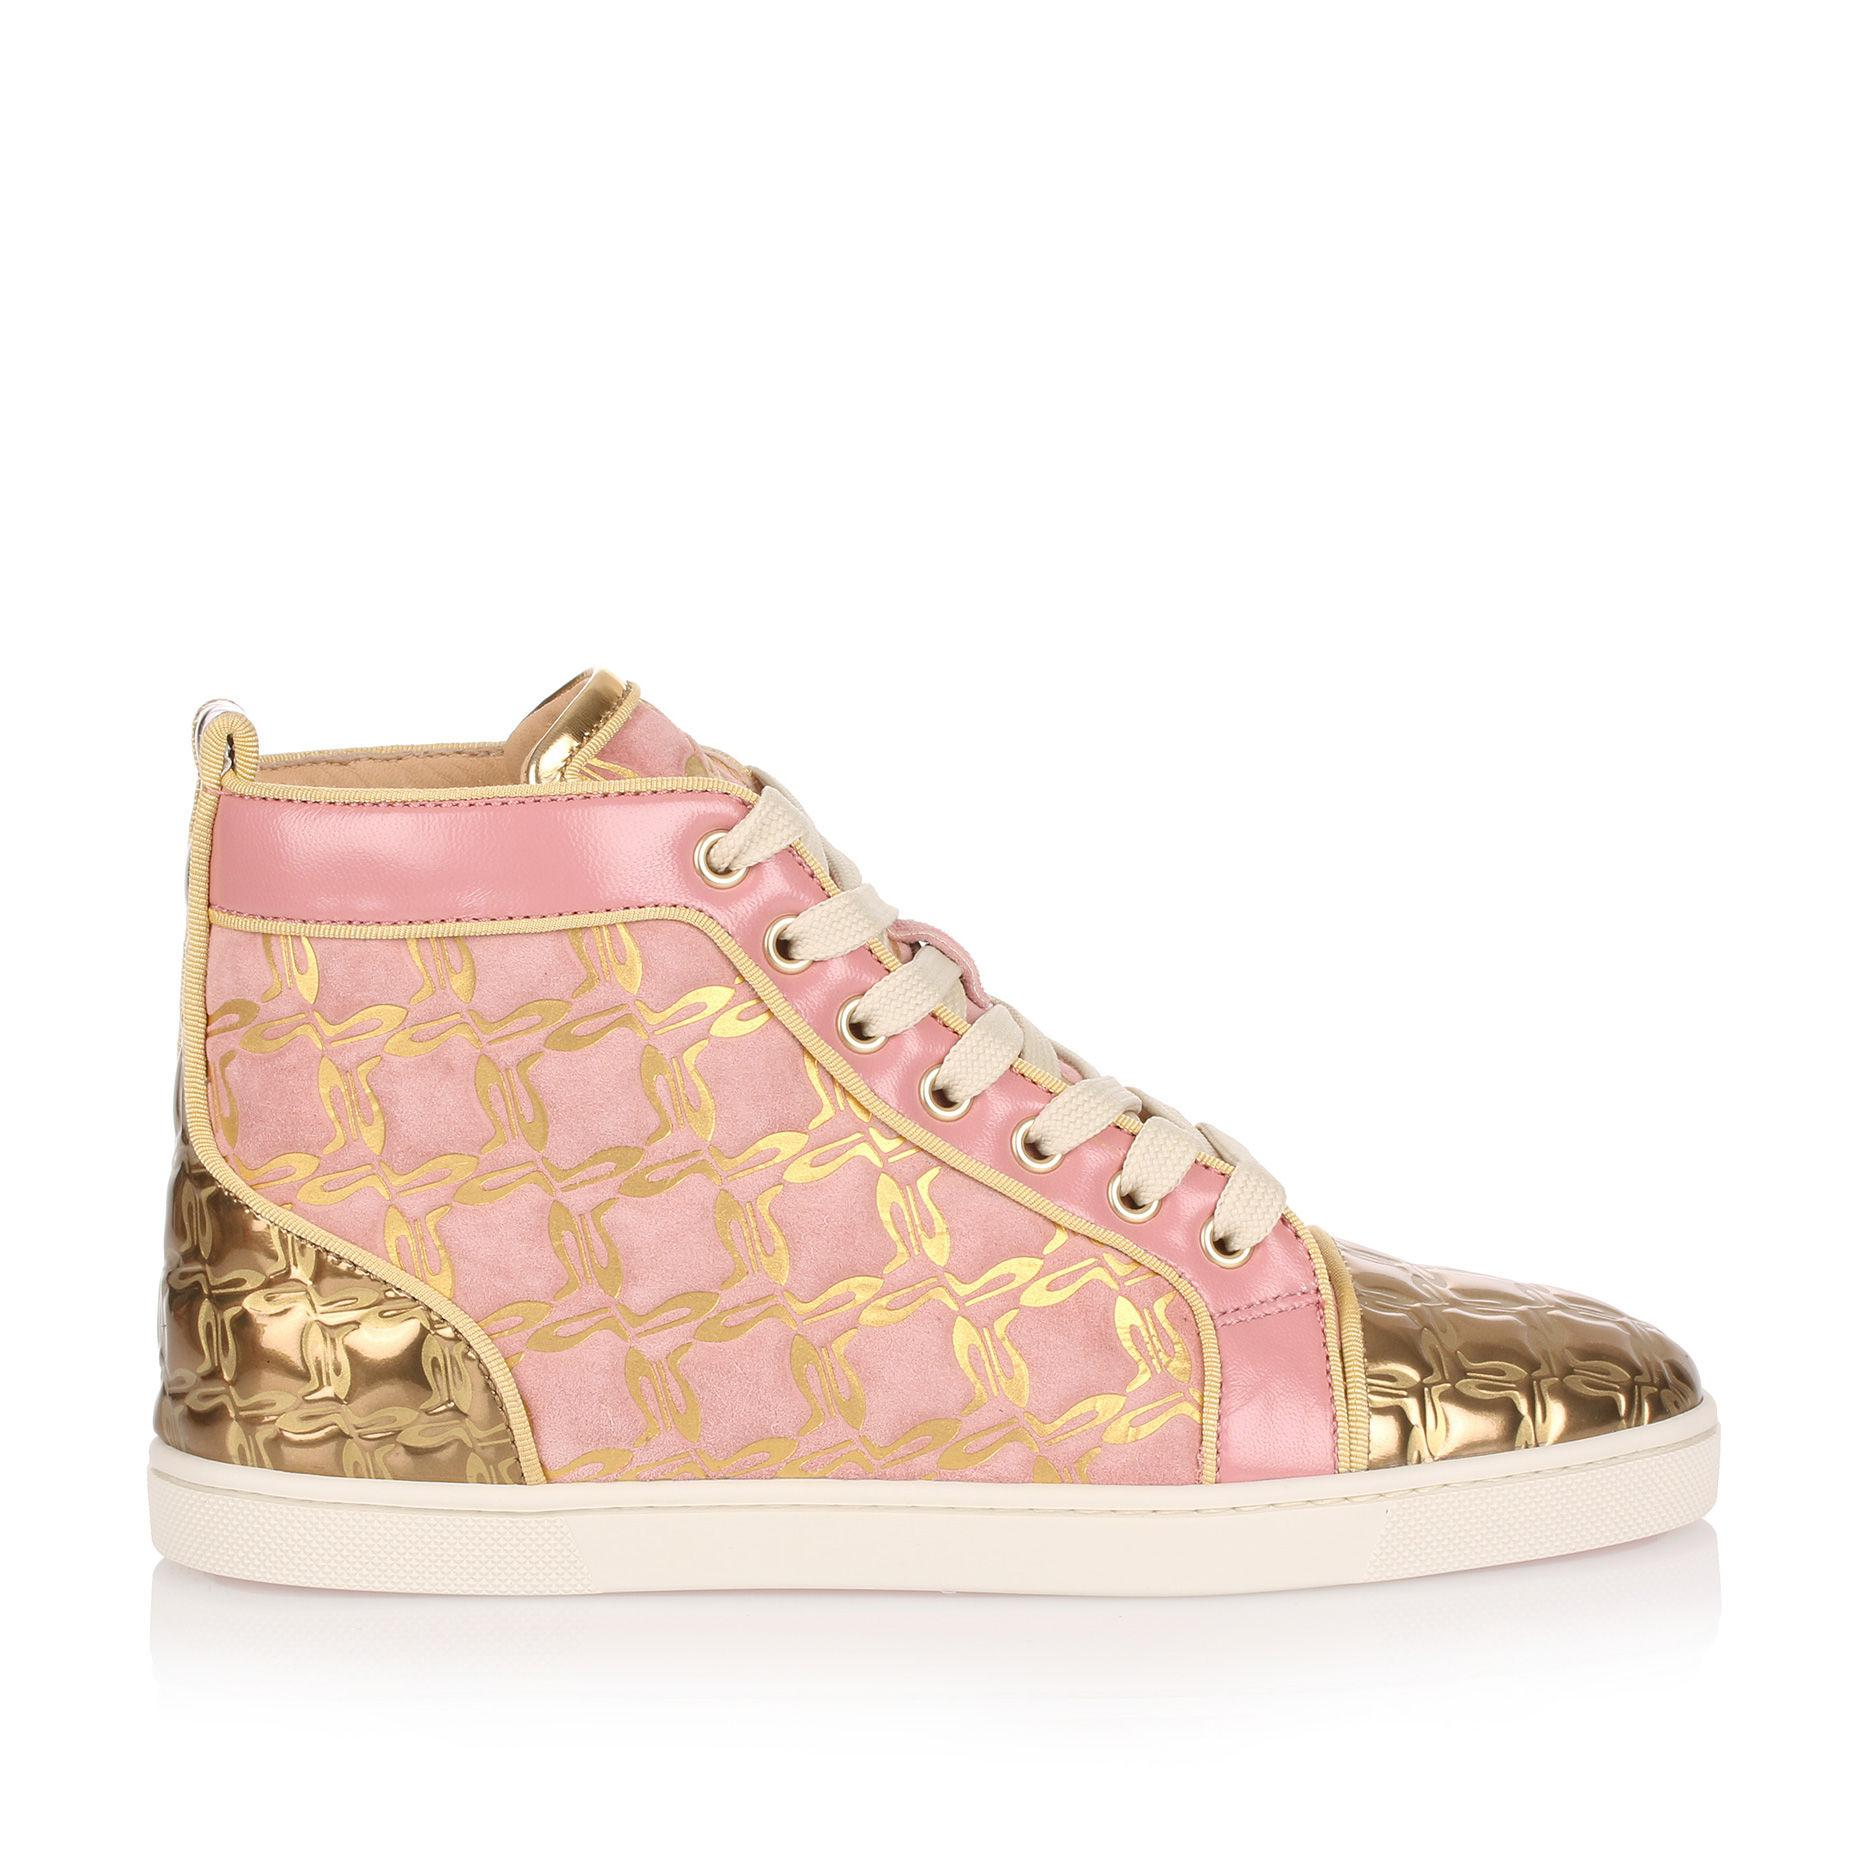 68bae8b5b435 Christian Louboutin Bip Bip Pink And Gold Suede Sneaker Us in Pink ...